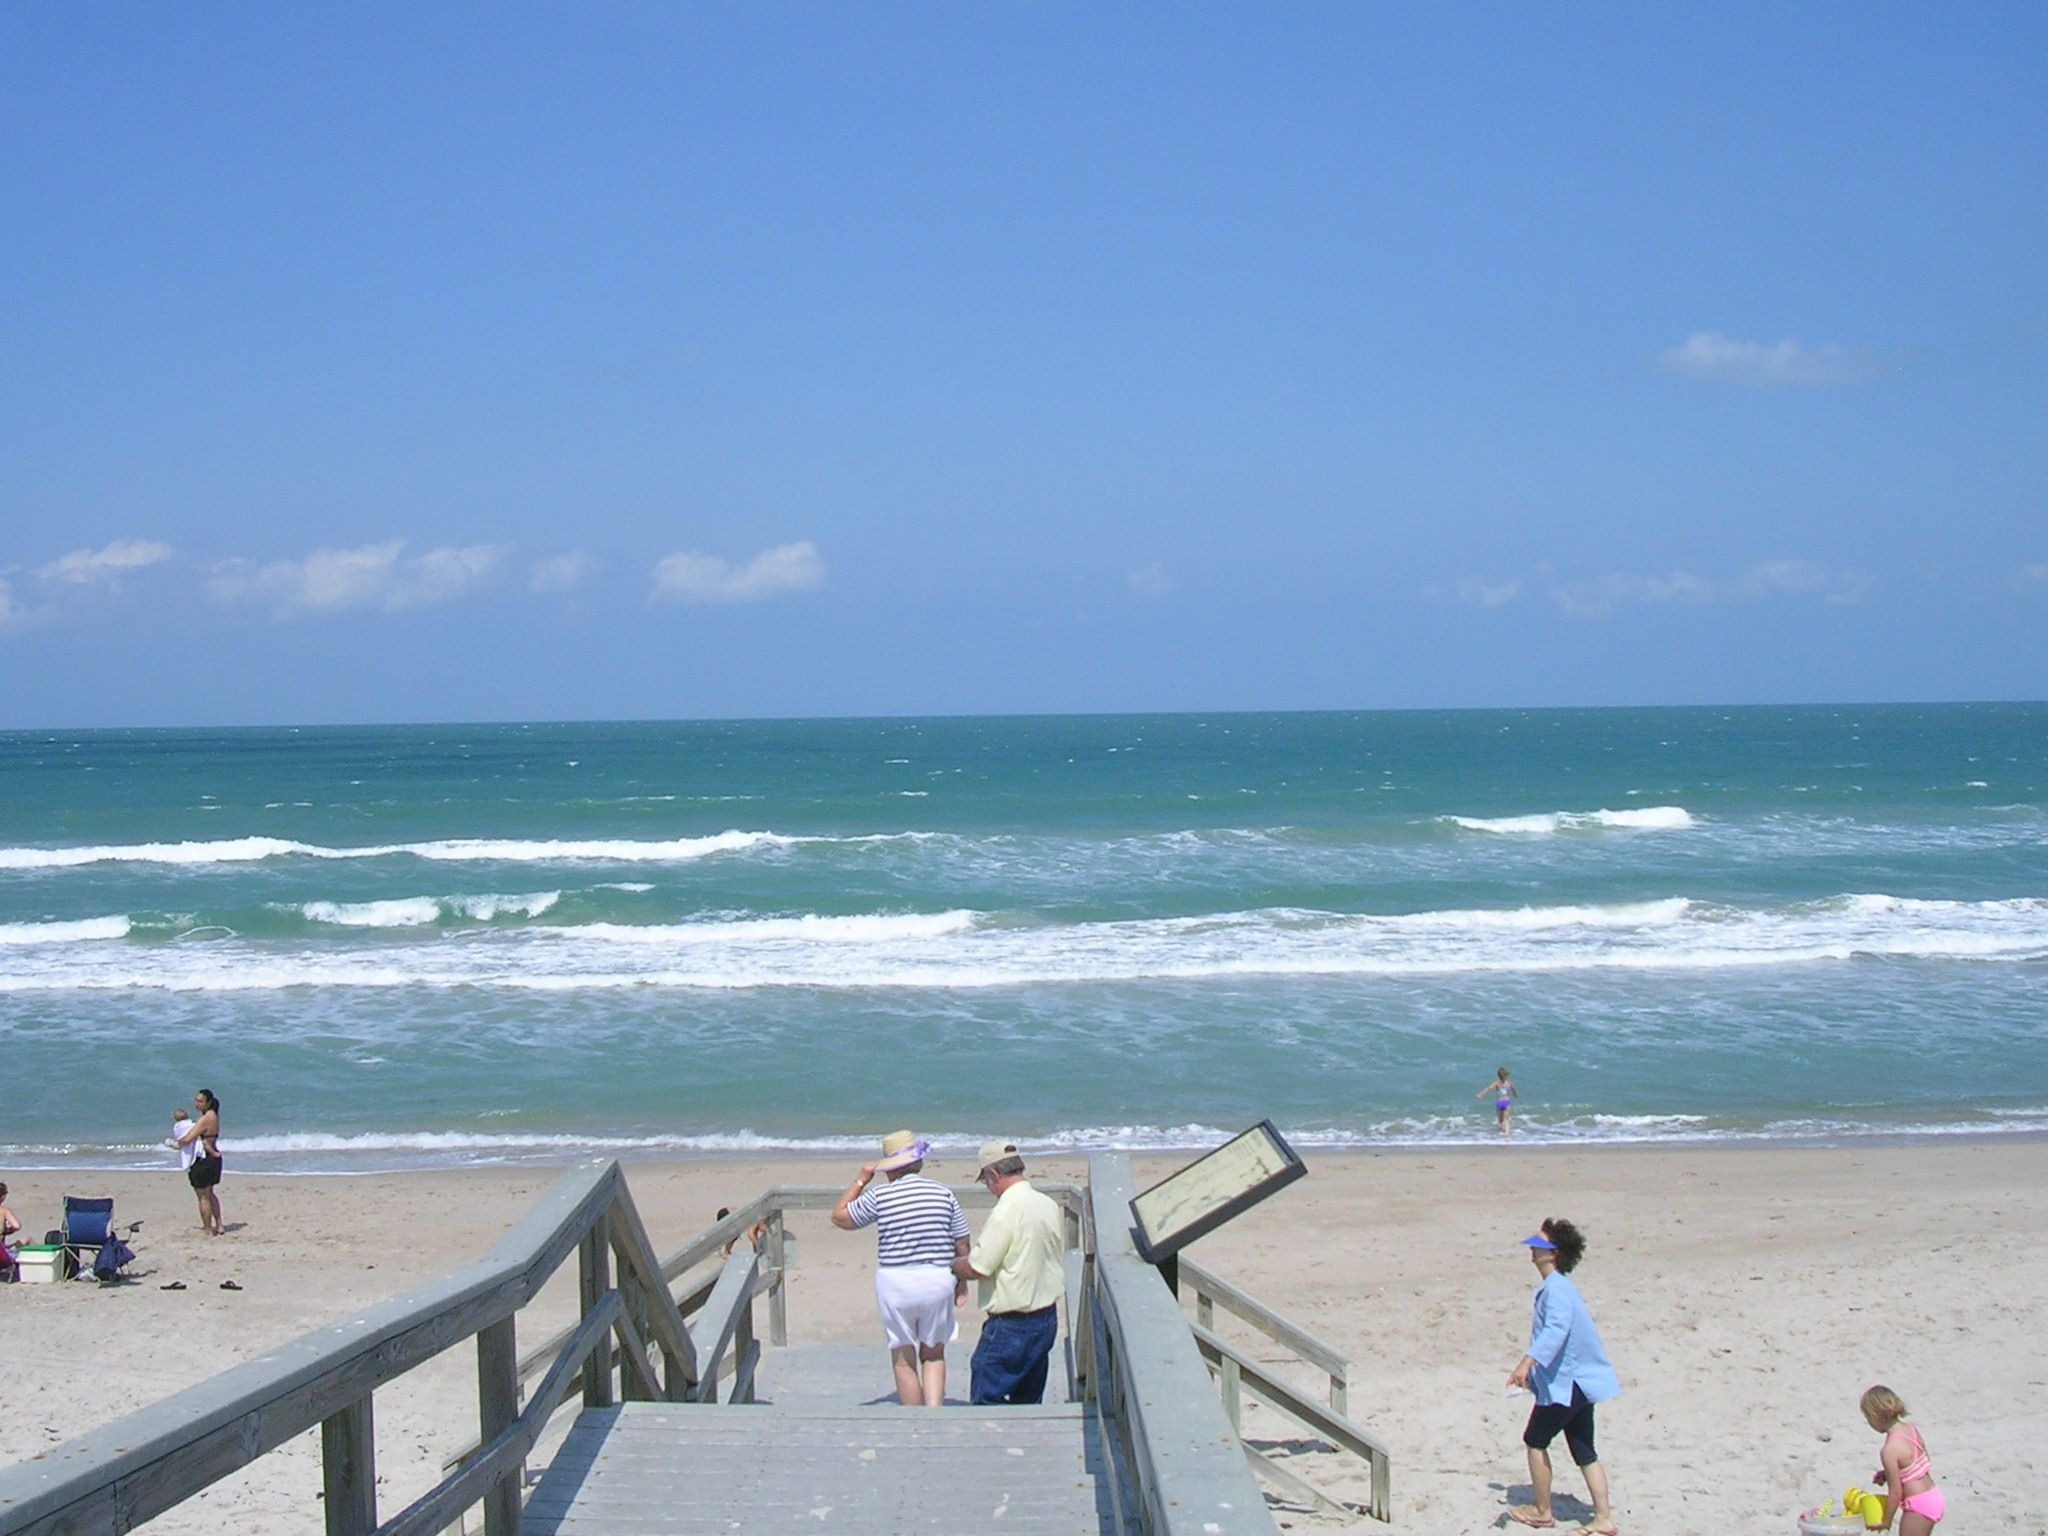 Playalinda Beach Florida Great Place For A Wedding Un Improved Natural